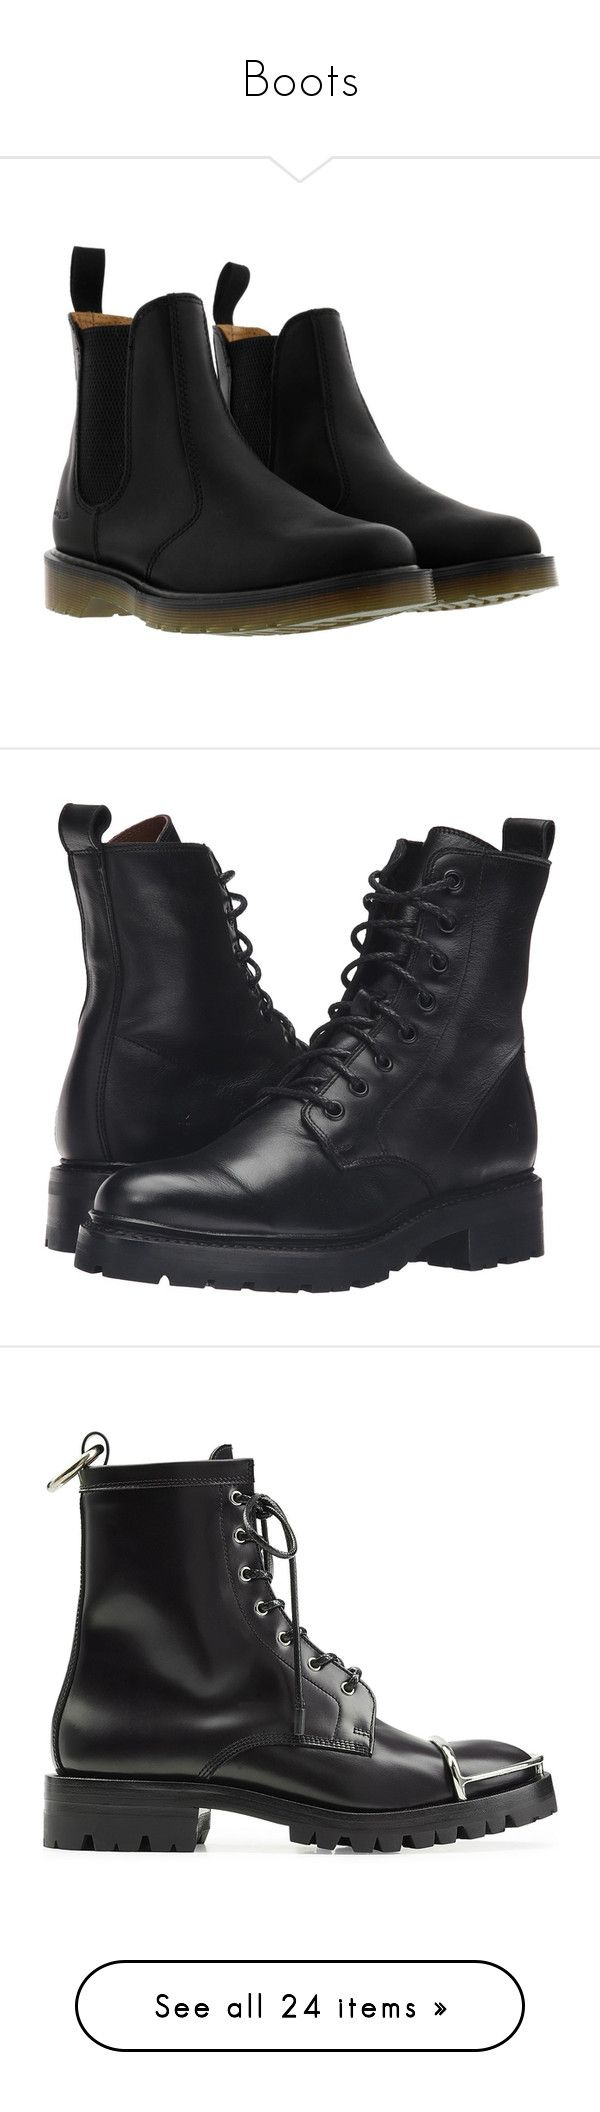 """""""Boots"""" by nikib129 ❤ liked on Polyvore featuring shoes, boots, ankle booties, black, black boots, black chelsea boots, chelsea ankle boots, black chelsea ankle boots, dr martens boots and black platform boots"""